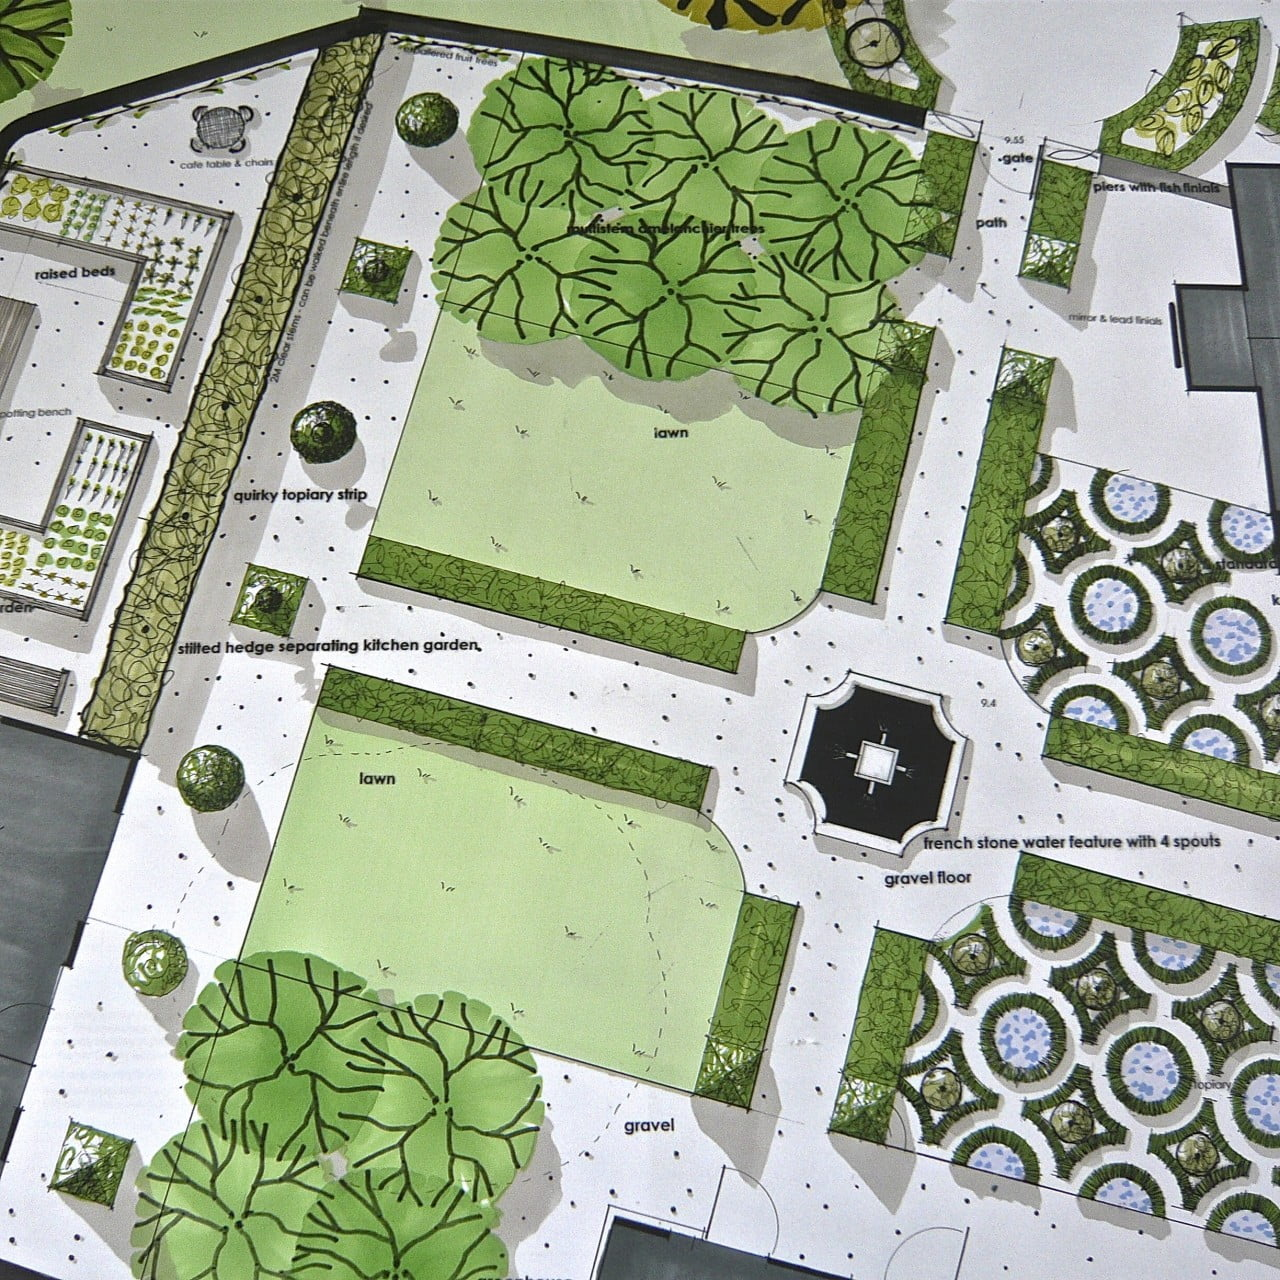 The drawing for this walled garden scheme